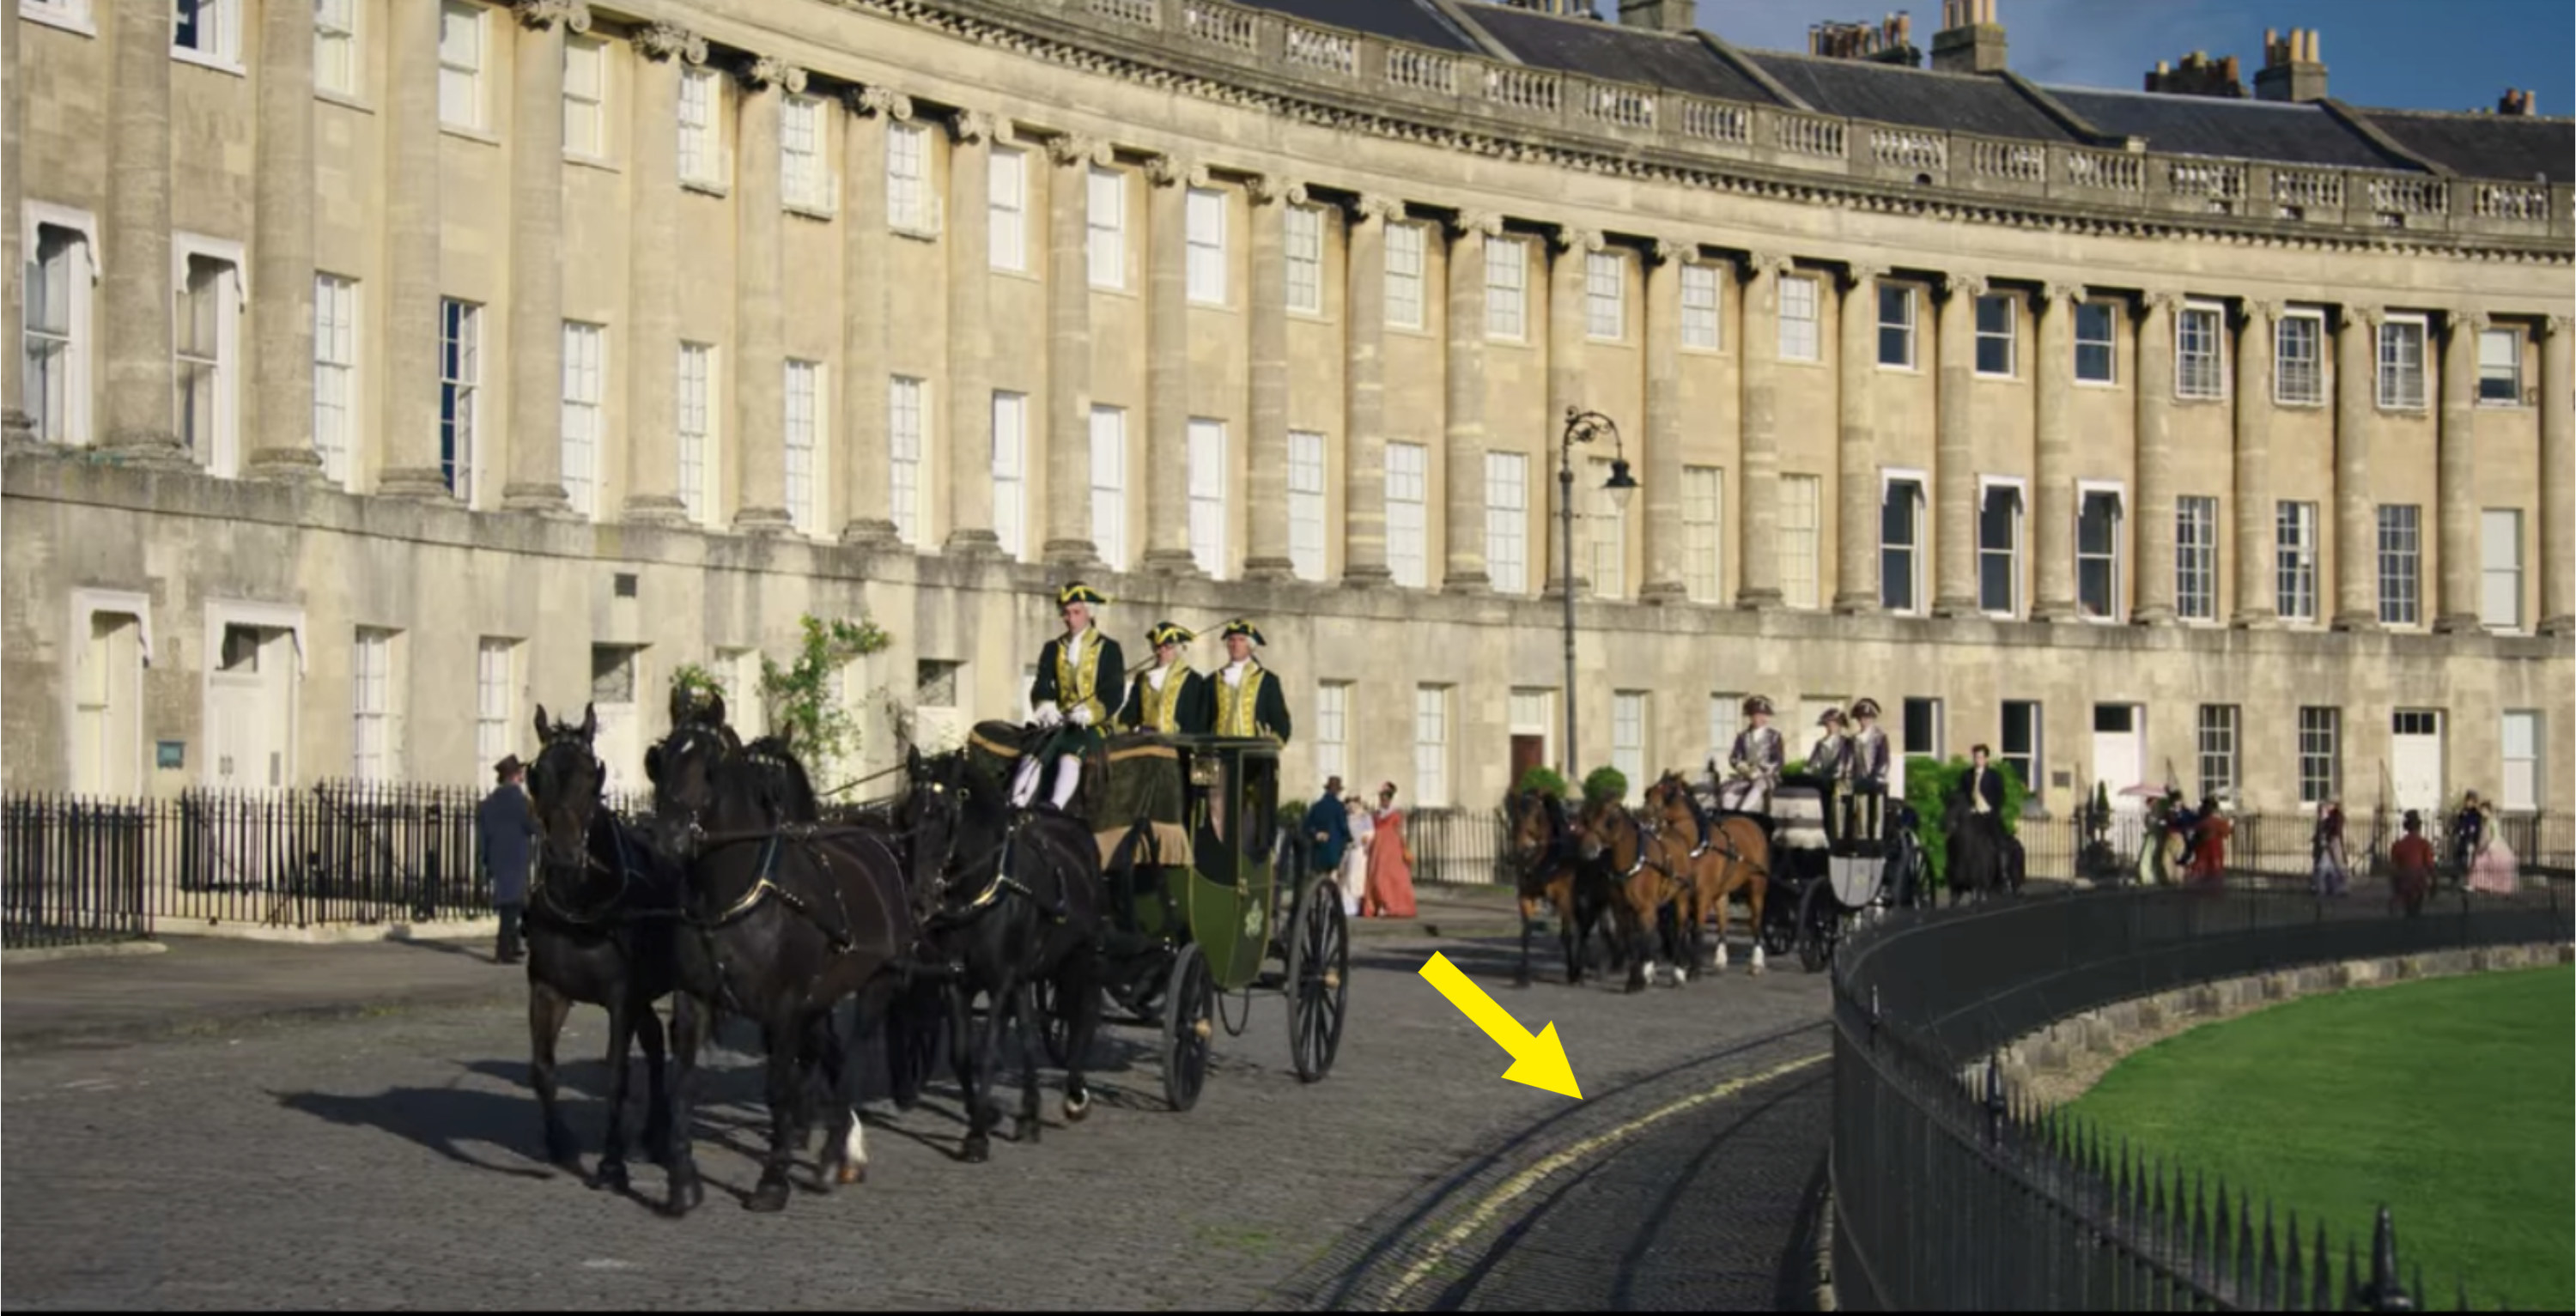 The ton entering the queen's palace